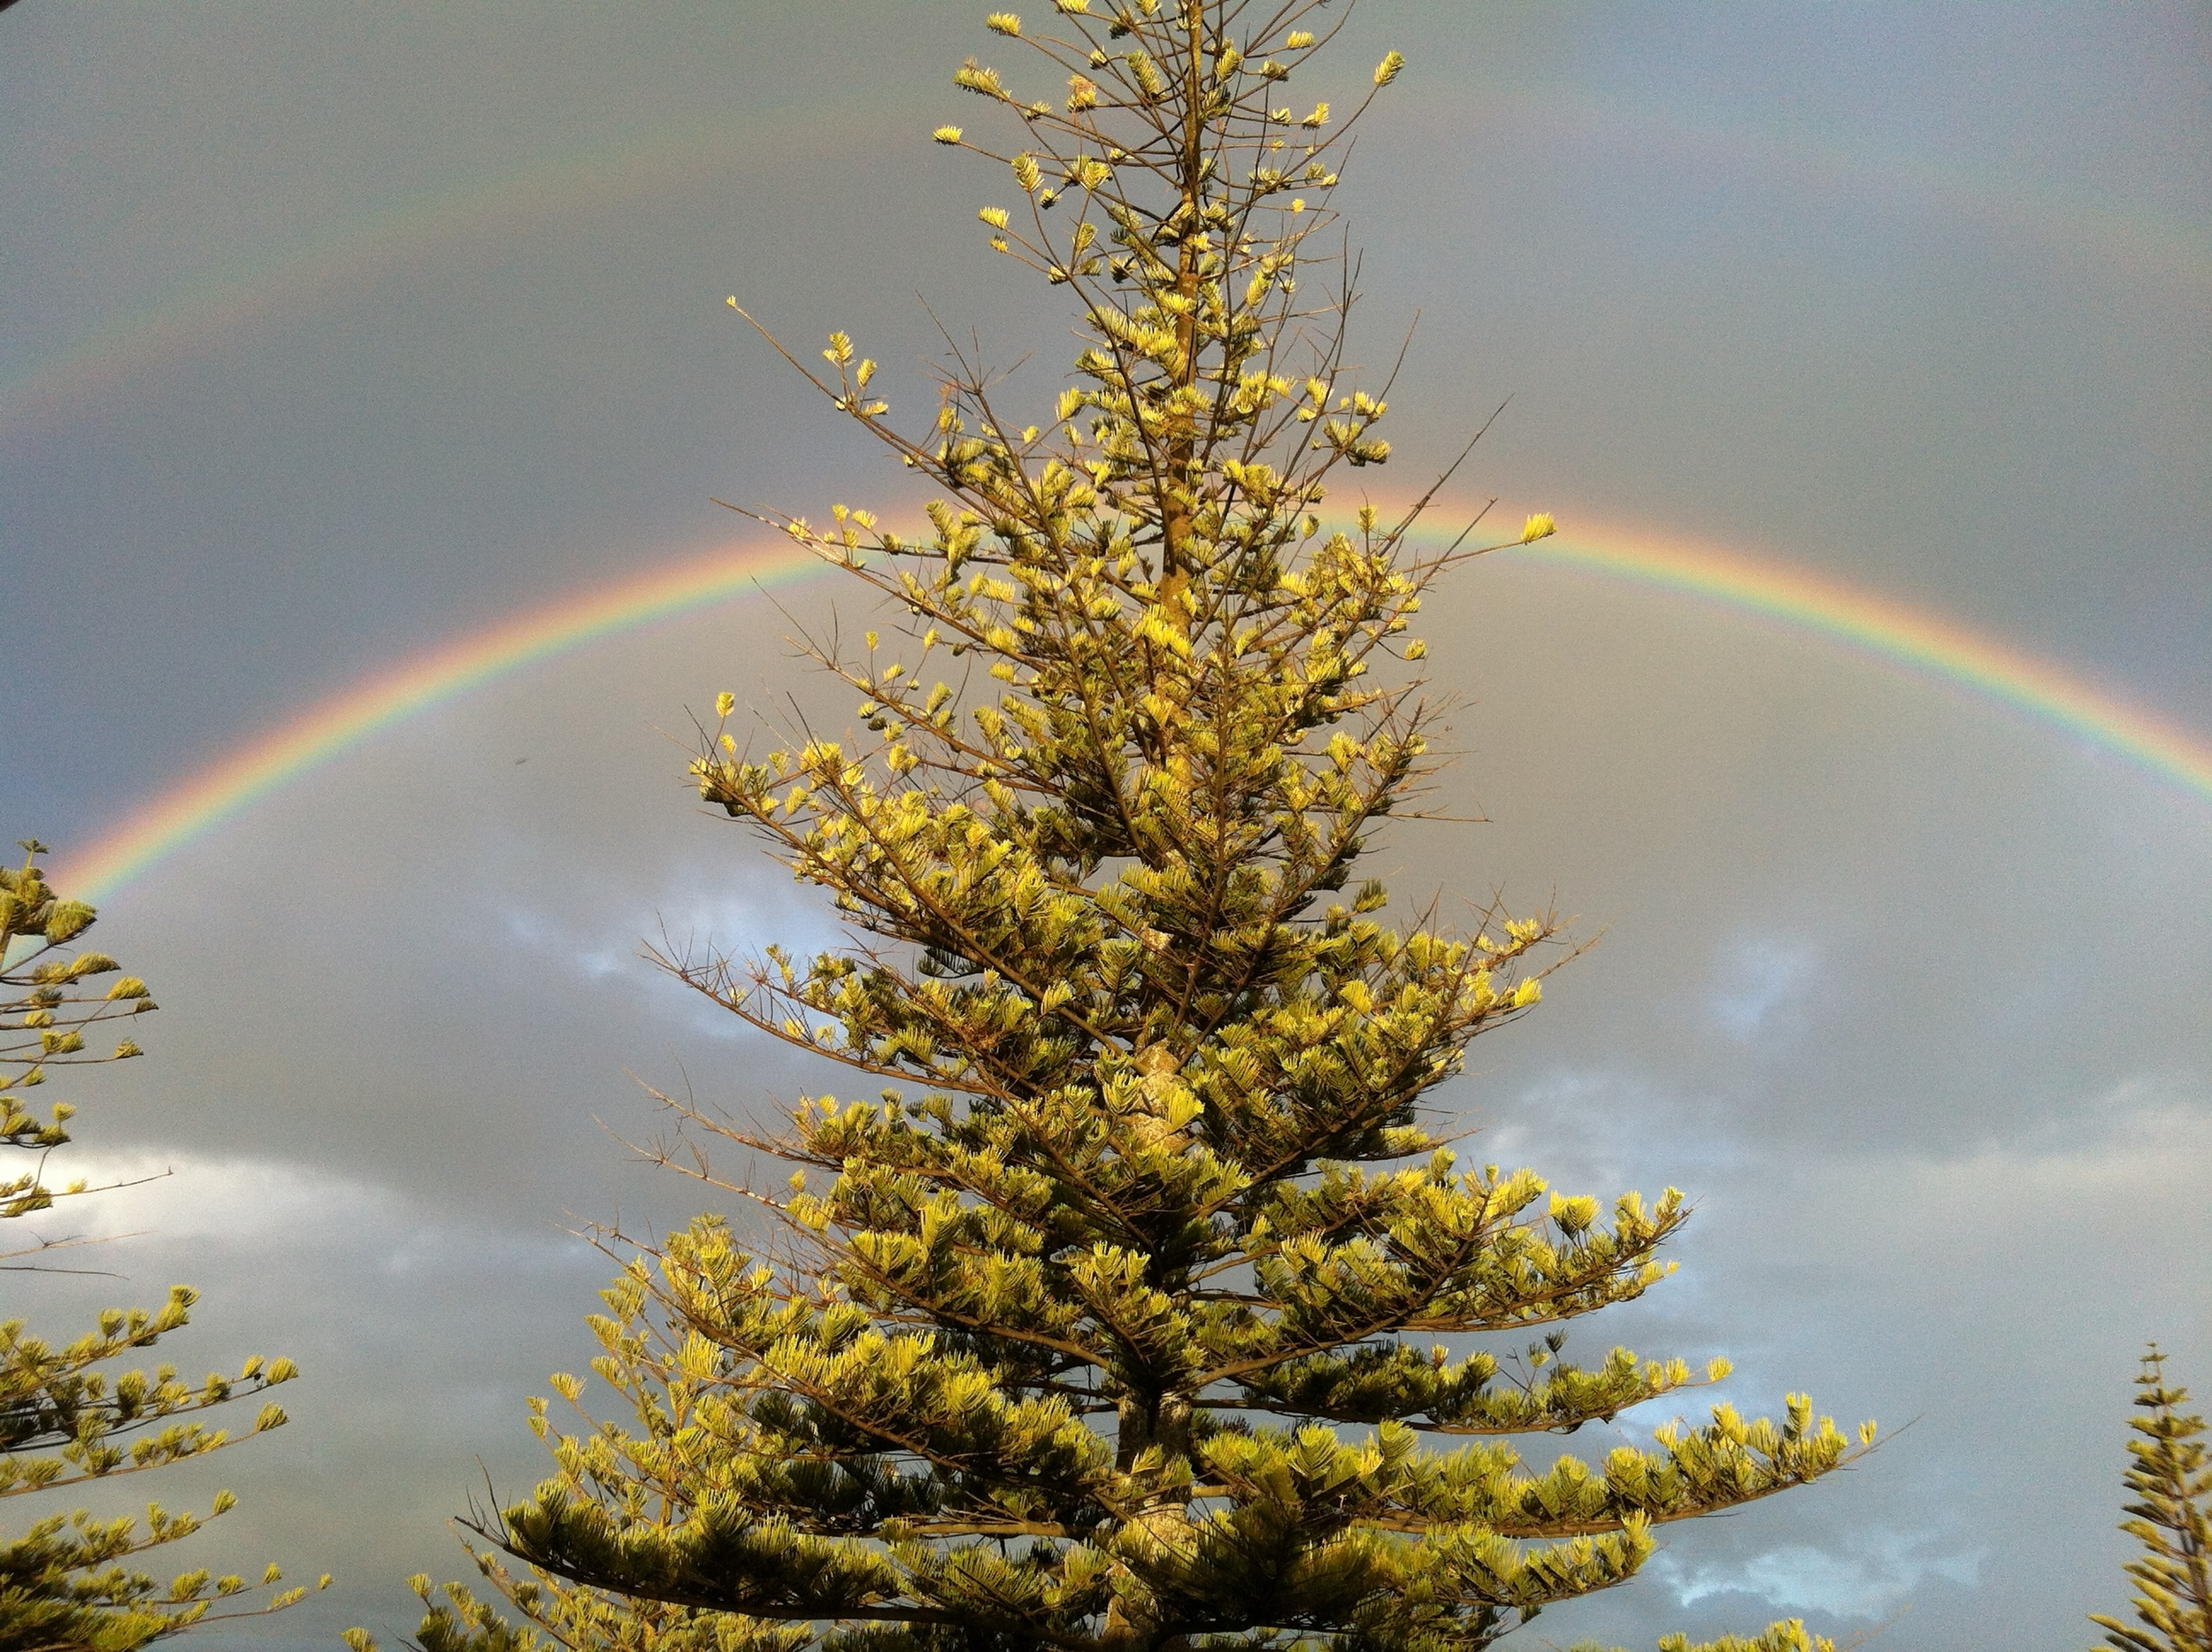 The perfect end to our first day in Napier. DOUBLE RAINBOW from my apartment balcony!!